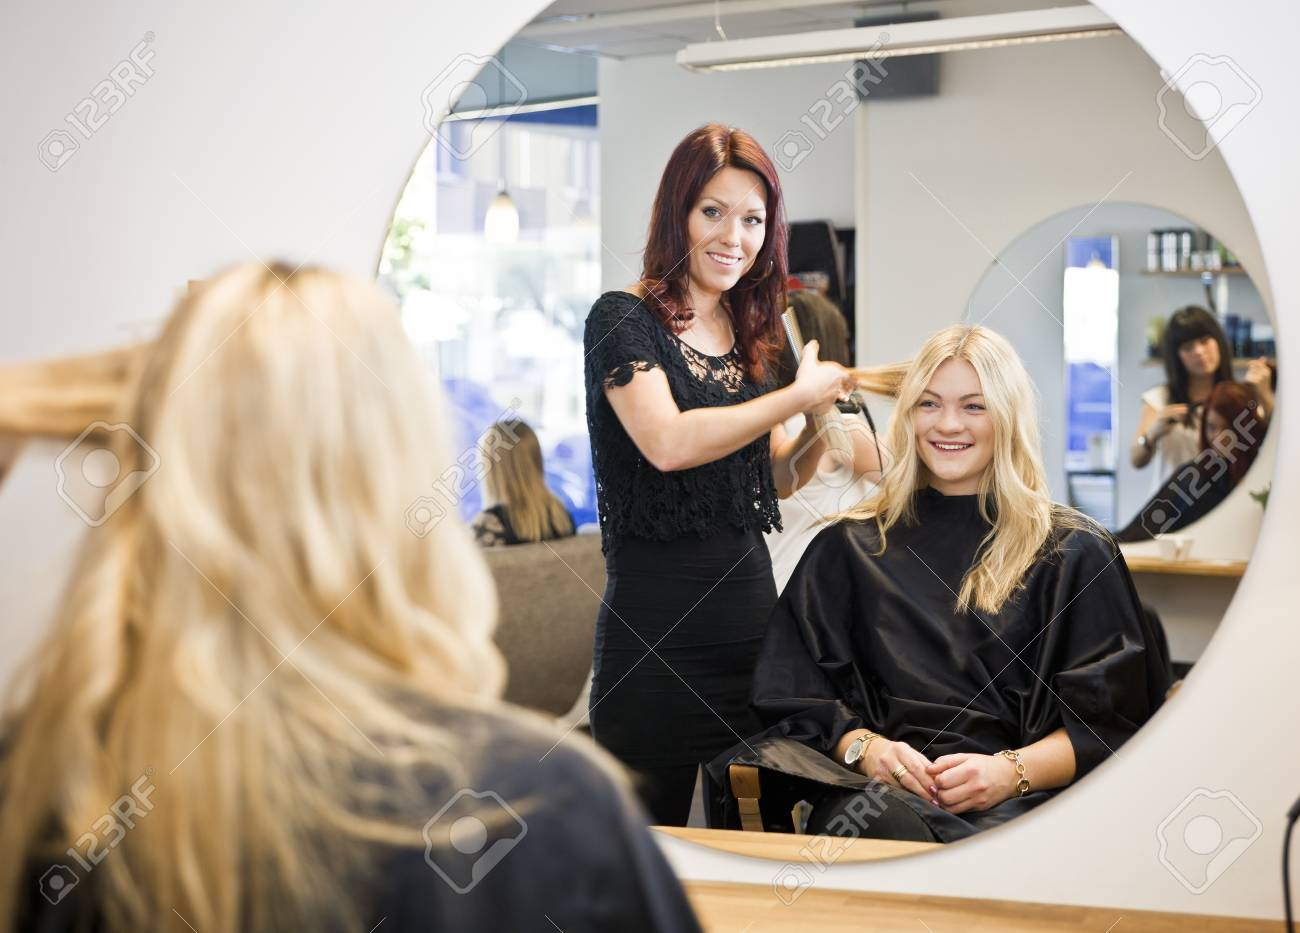 Situation in a Hair Salon Stock Photo - 11223874